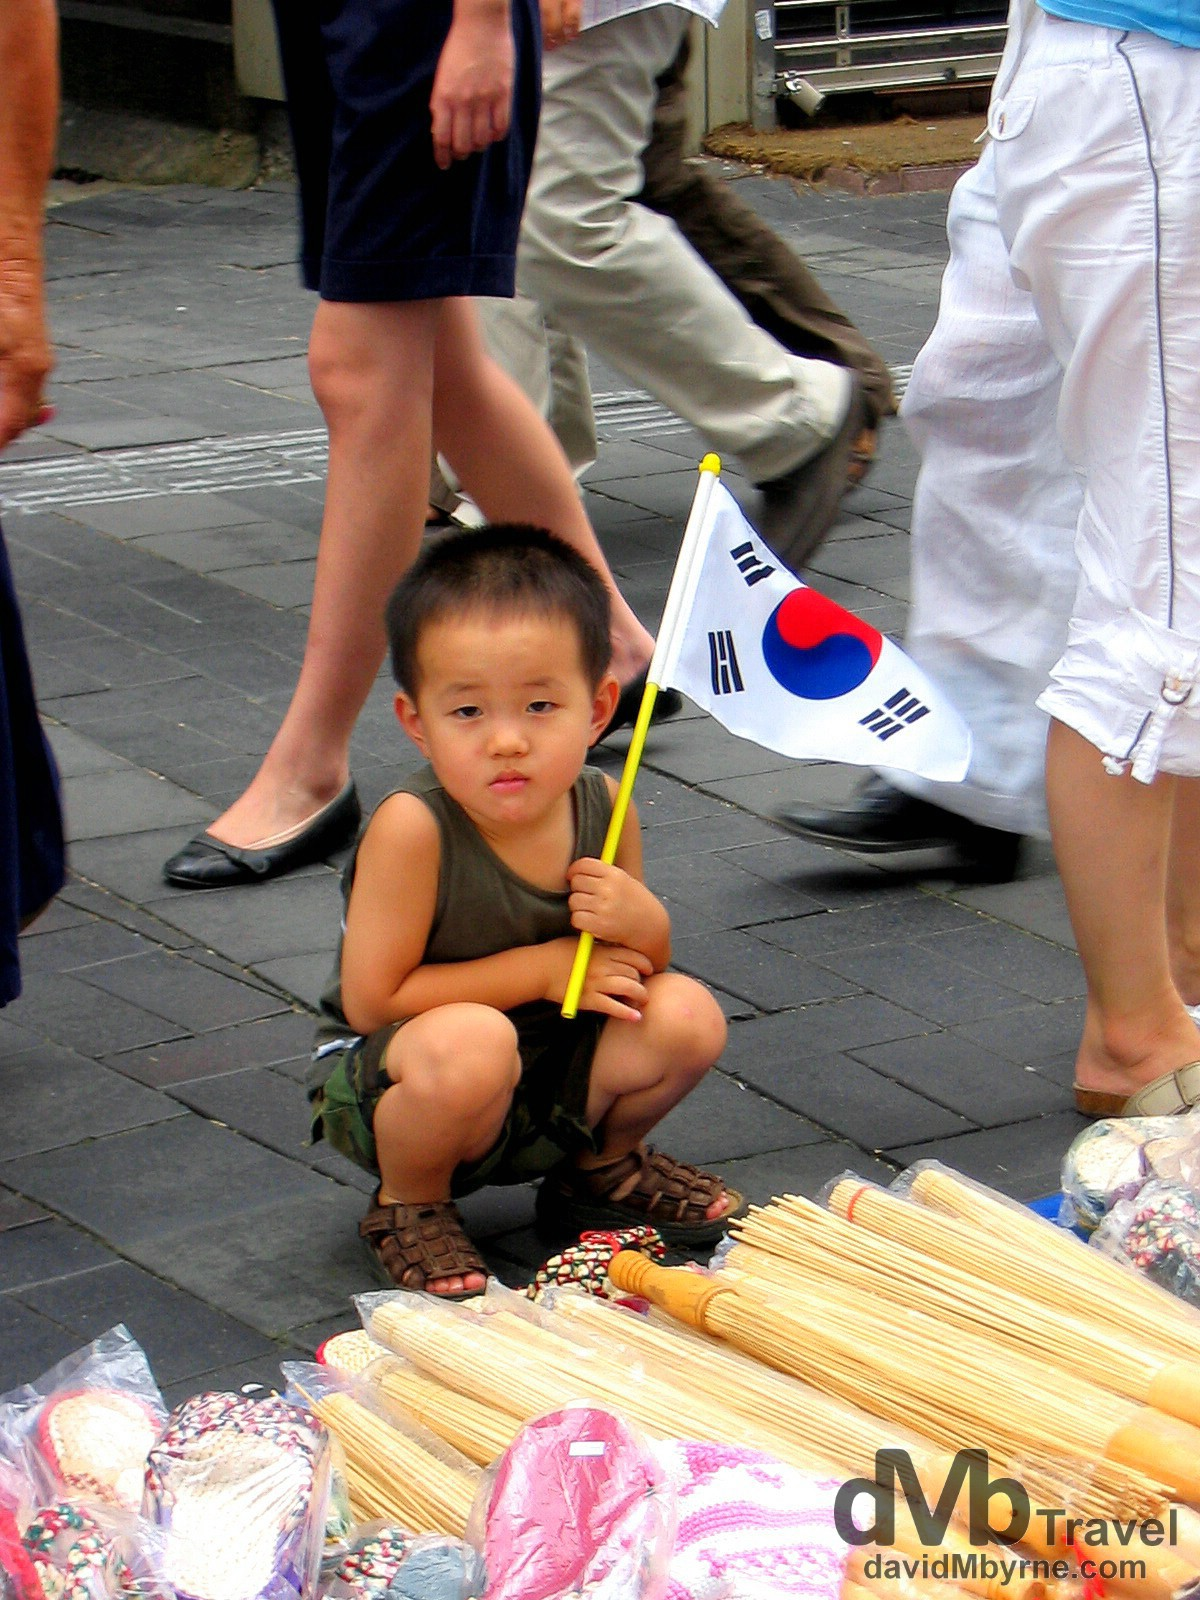 A young flag-bearer in Insadong, Seoul, South Korea, on Korean Independence Day. August 15th 2004